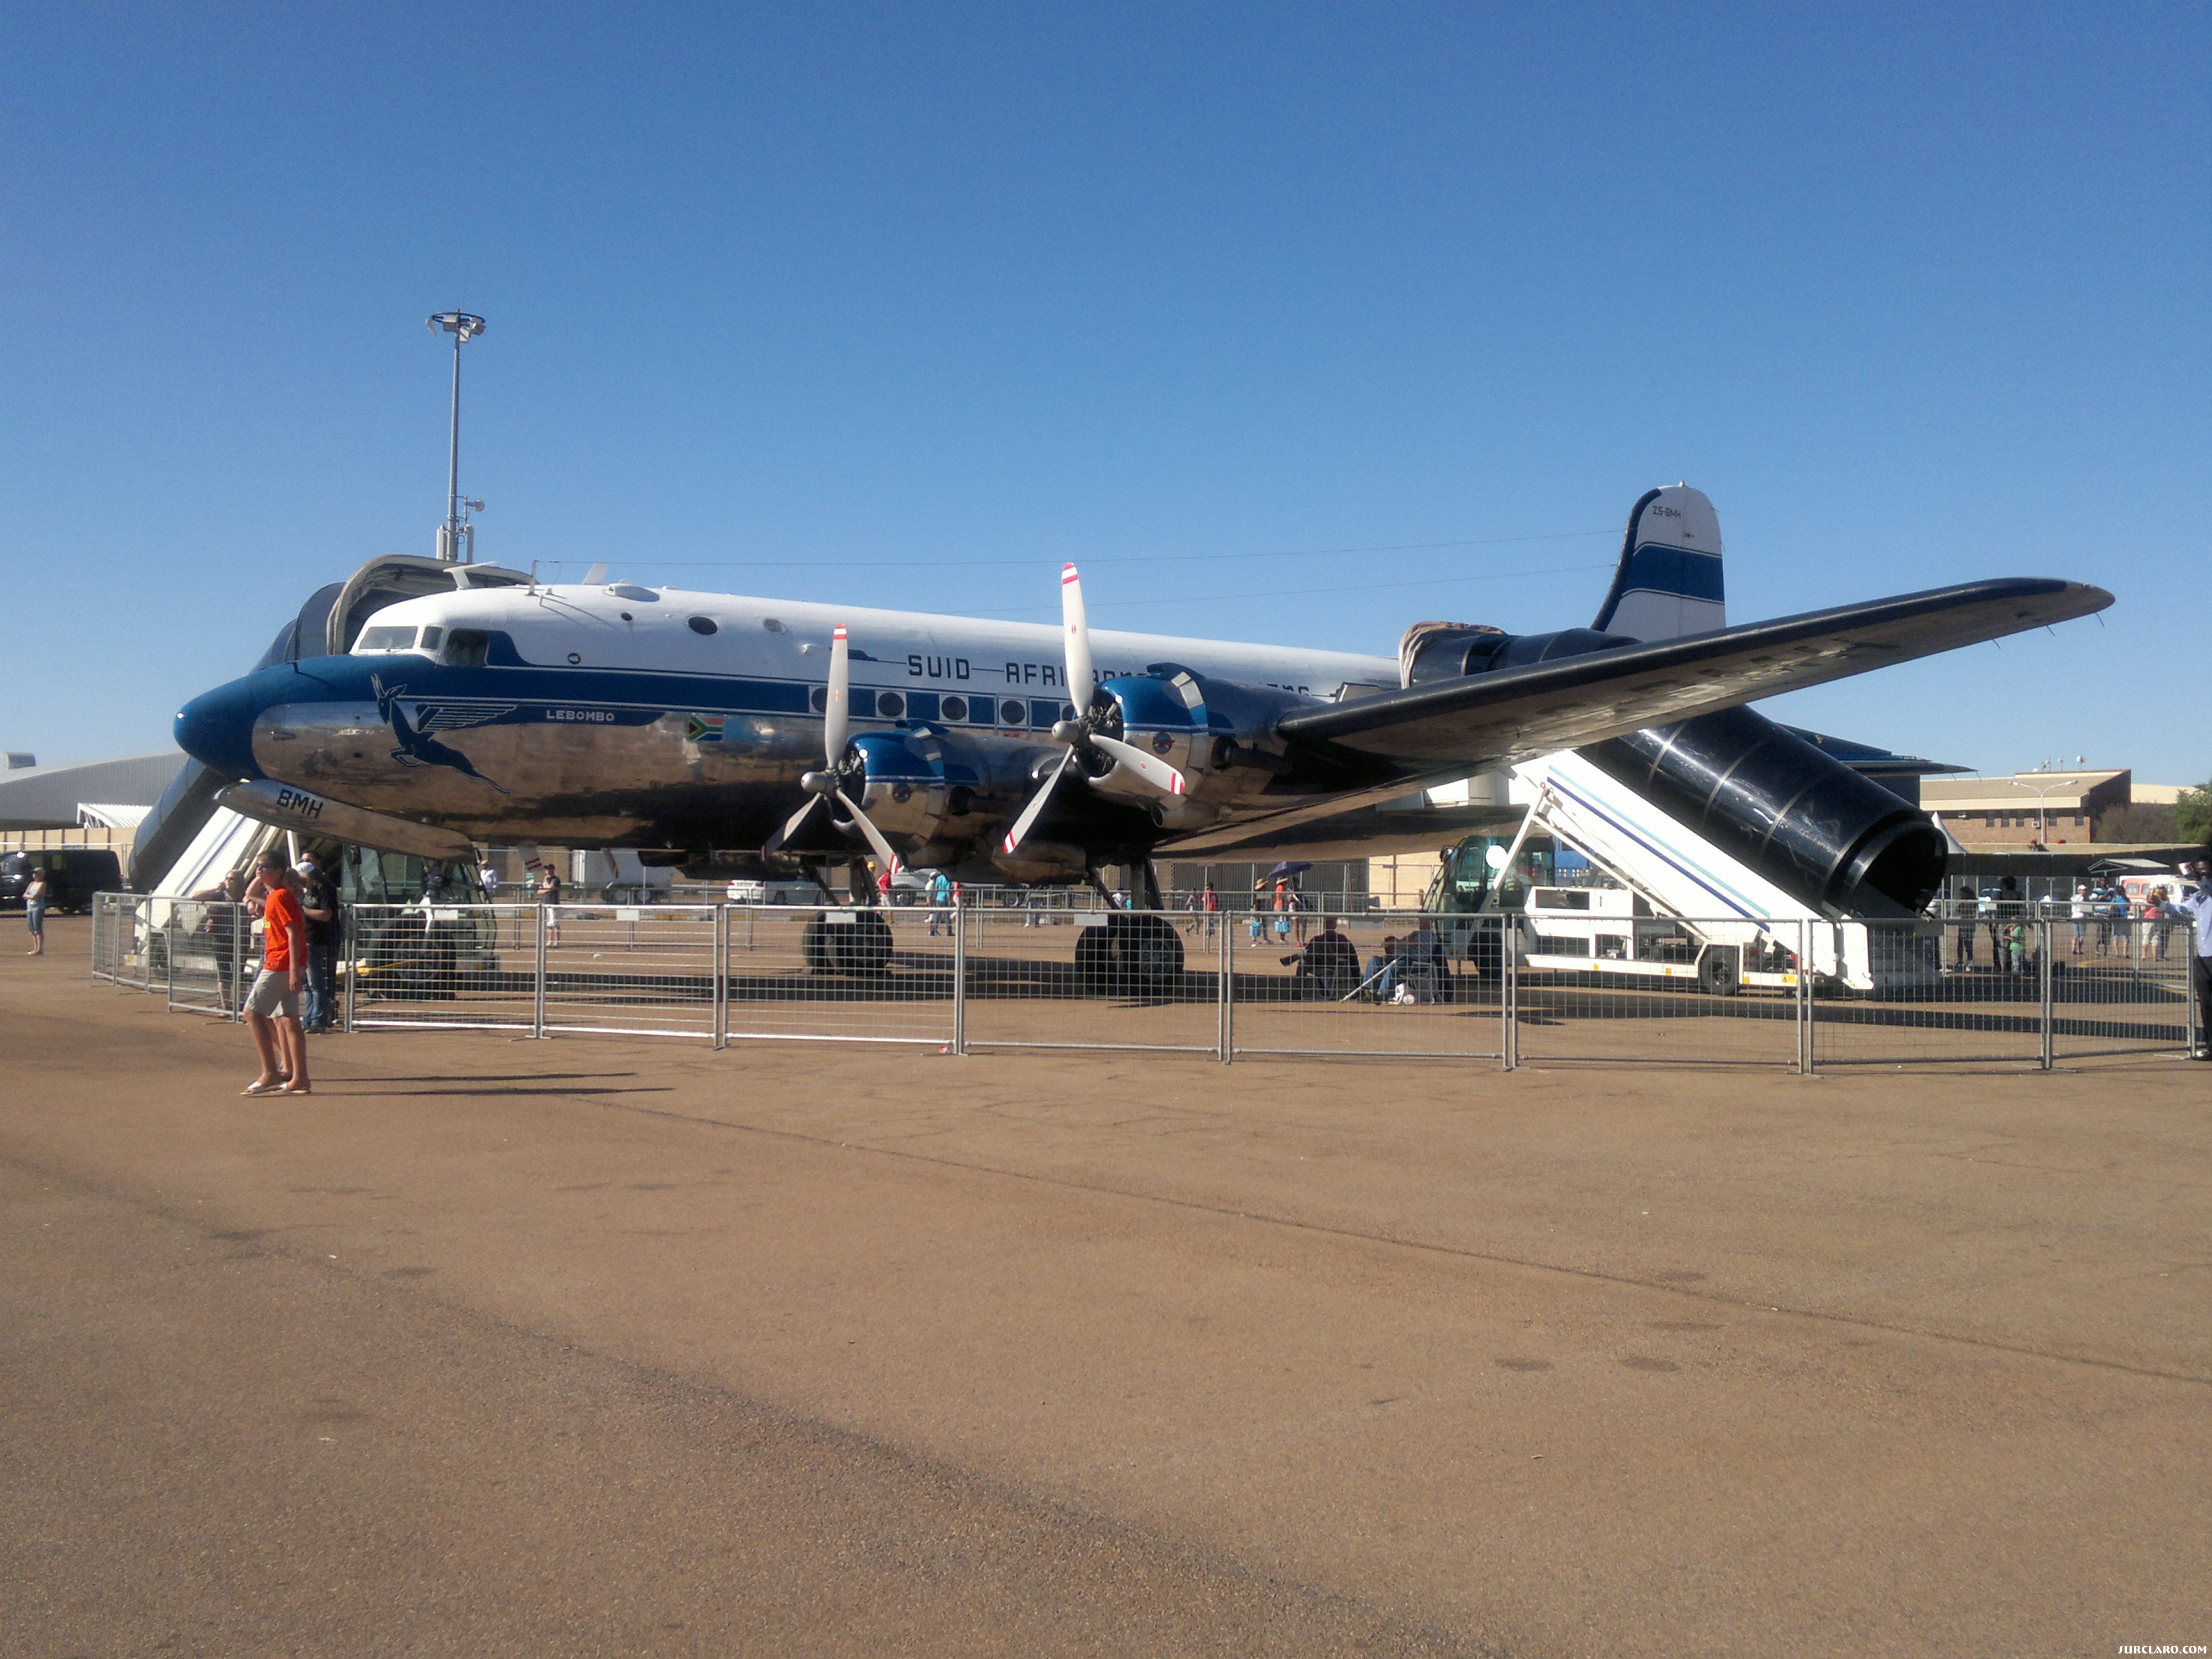 DC4 ZS-BMH AT THE AAD EXPO 2012 WATERKLOOF AFB - Photo 18742